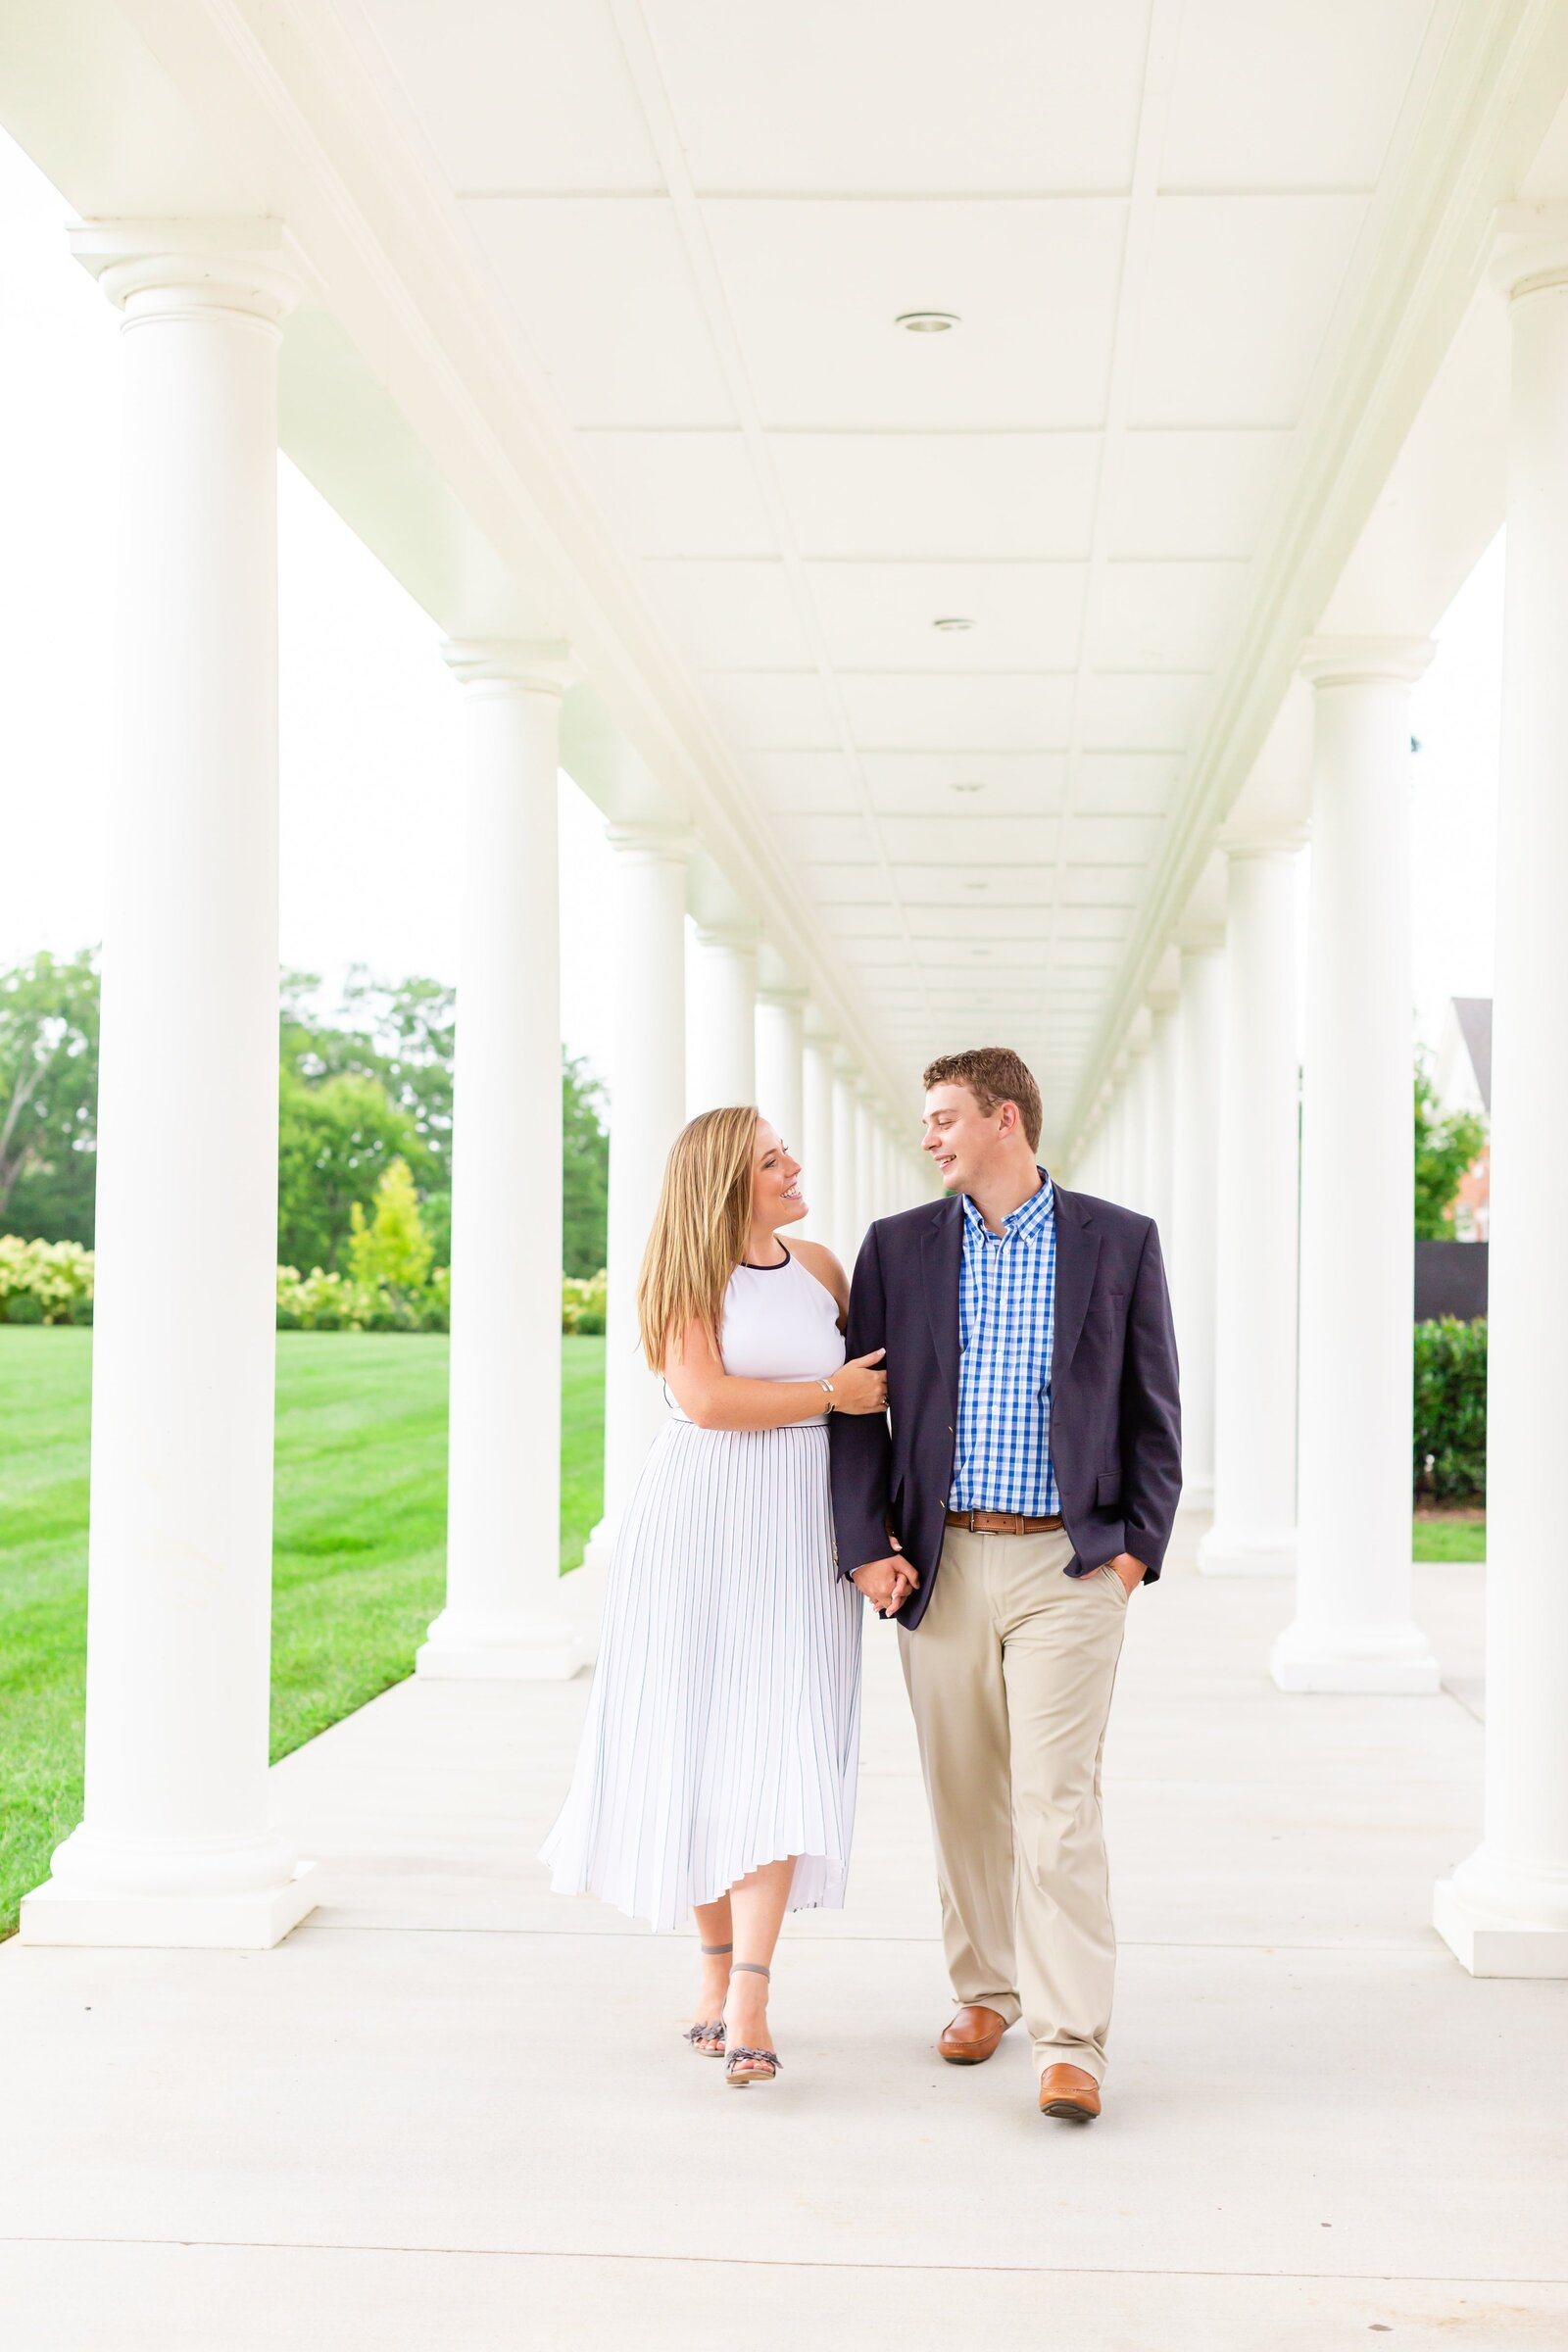 H & H Greenville engagement session by Charleston wedding photographer-5-min